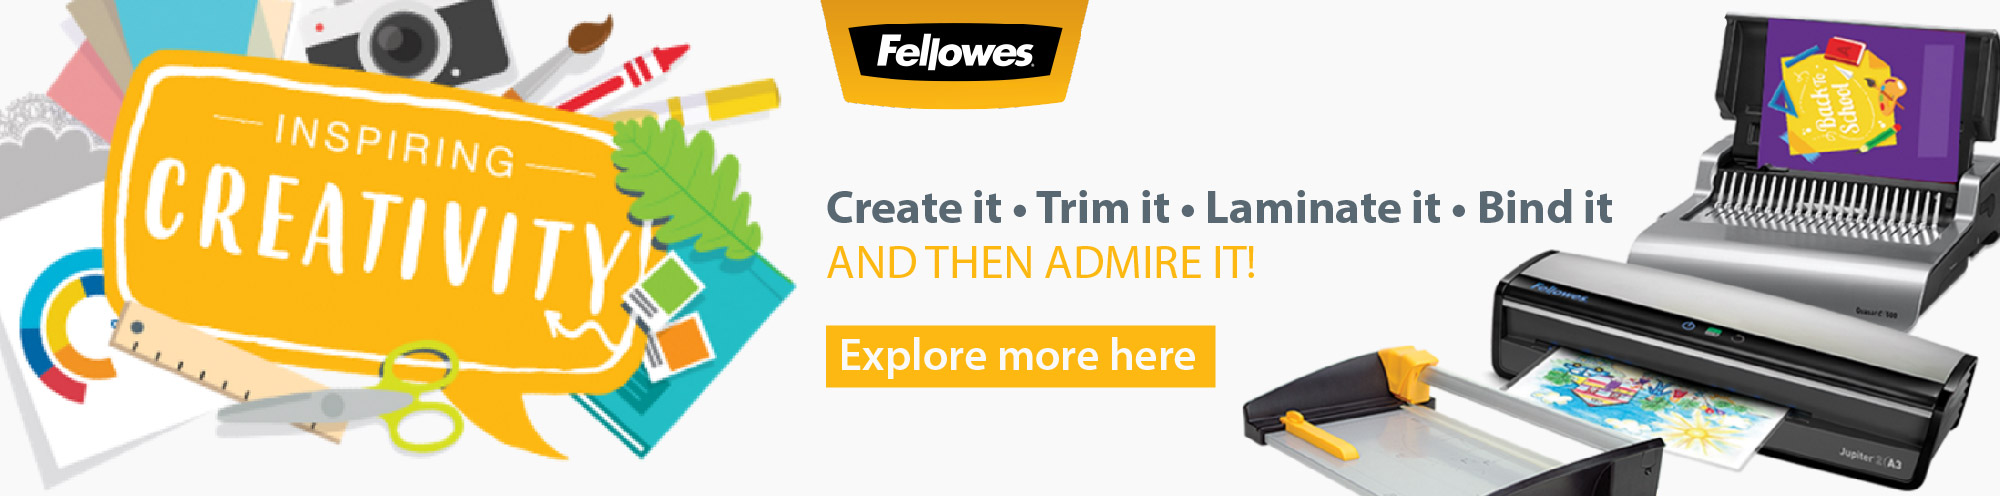 Inspiring Creativity with Fellowes Banner Image